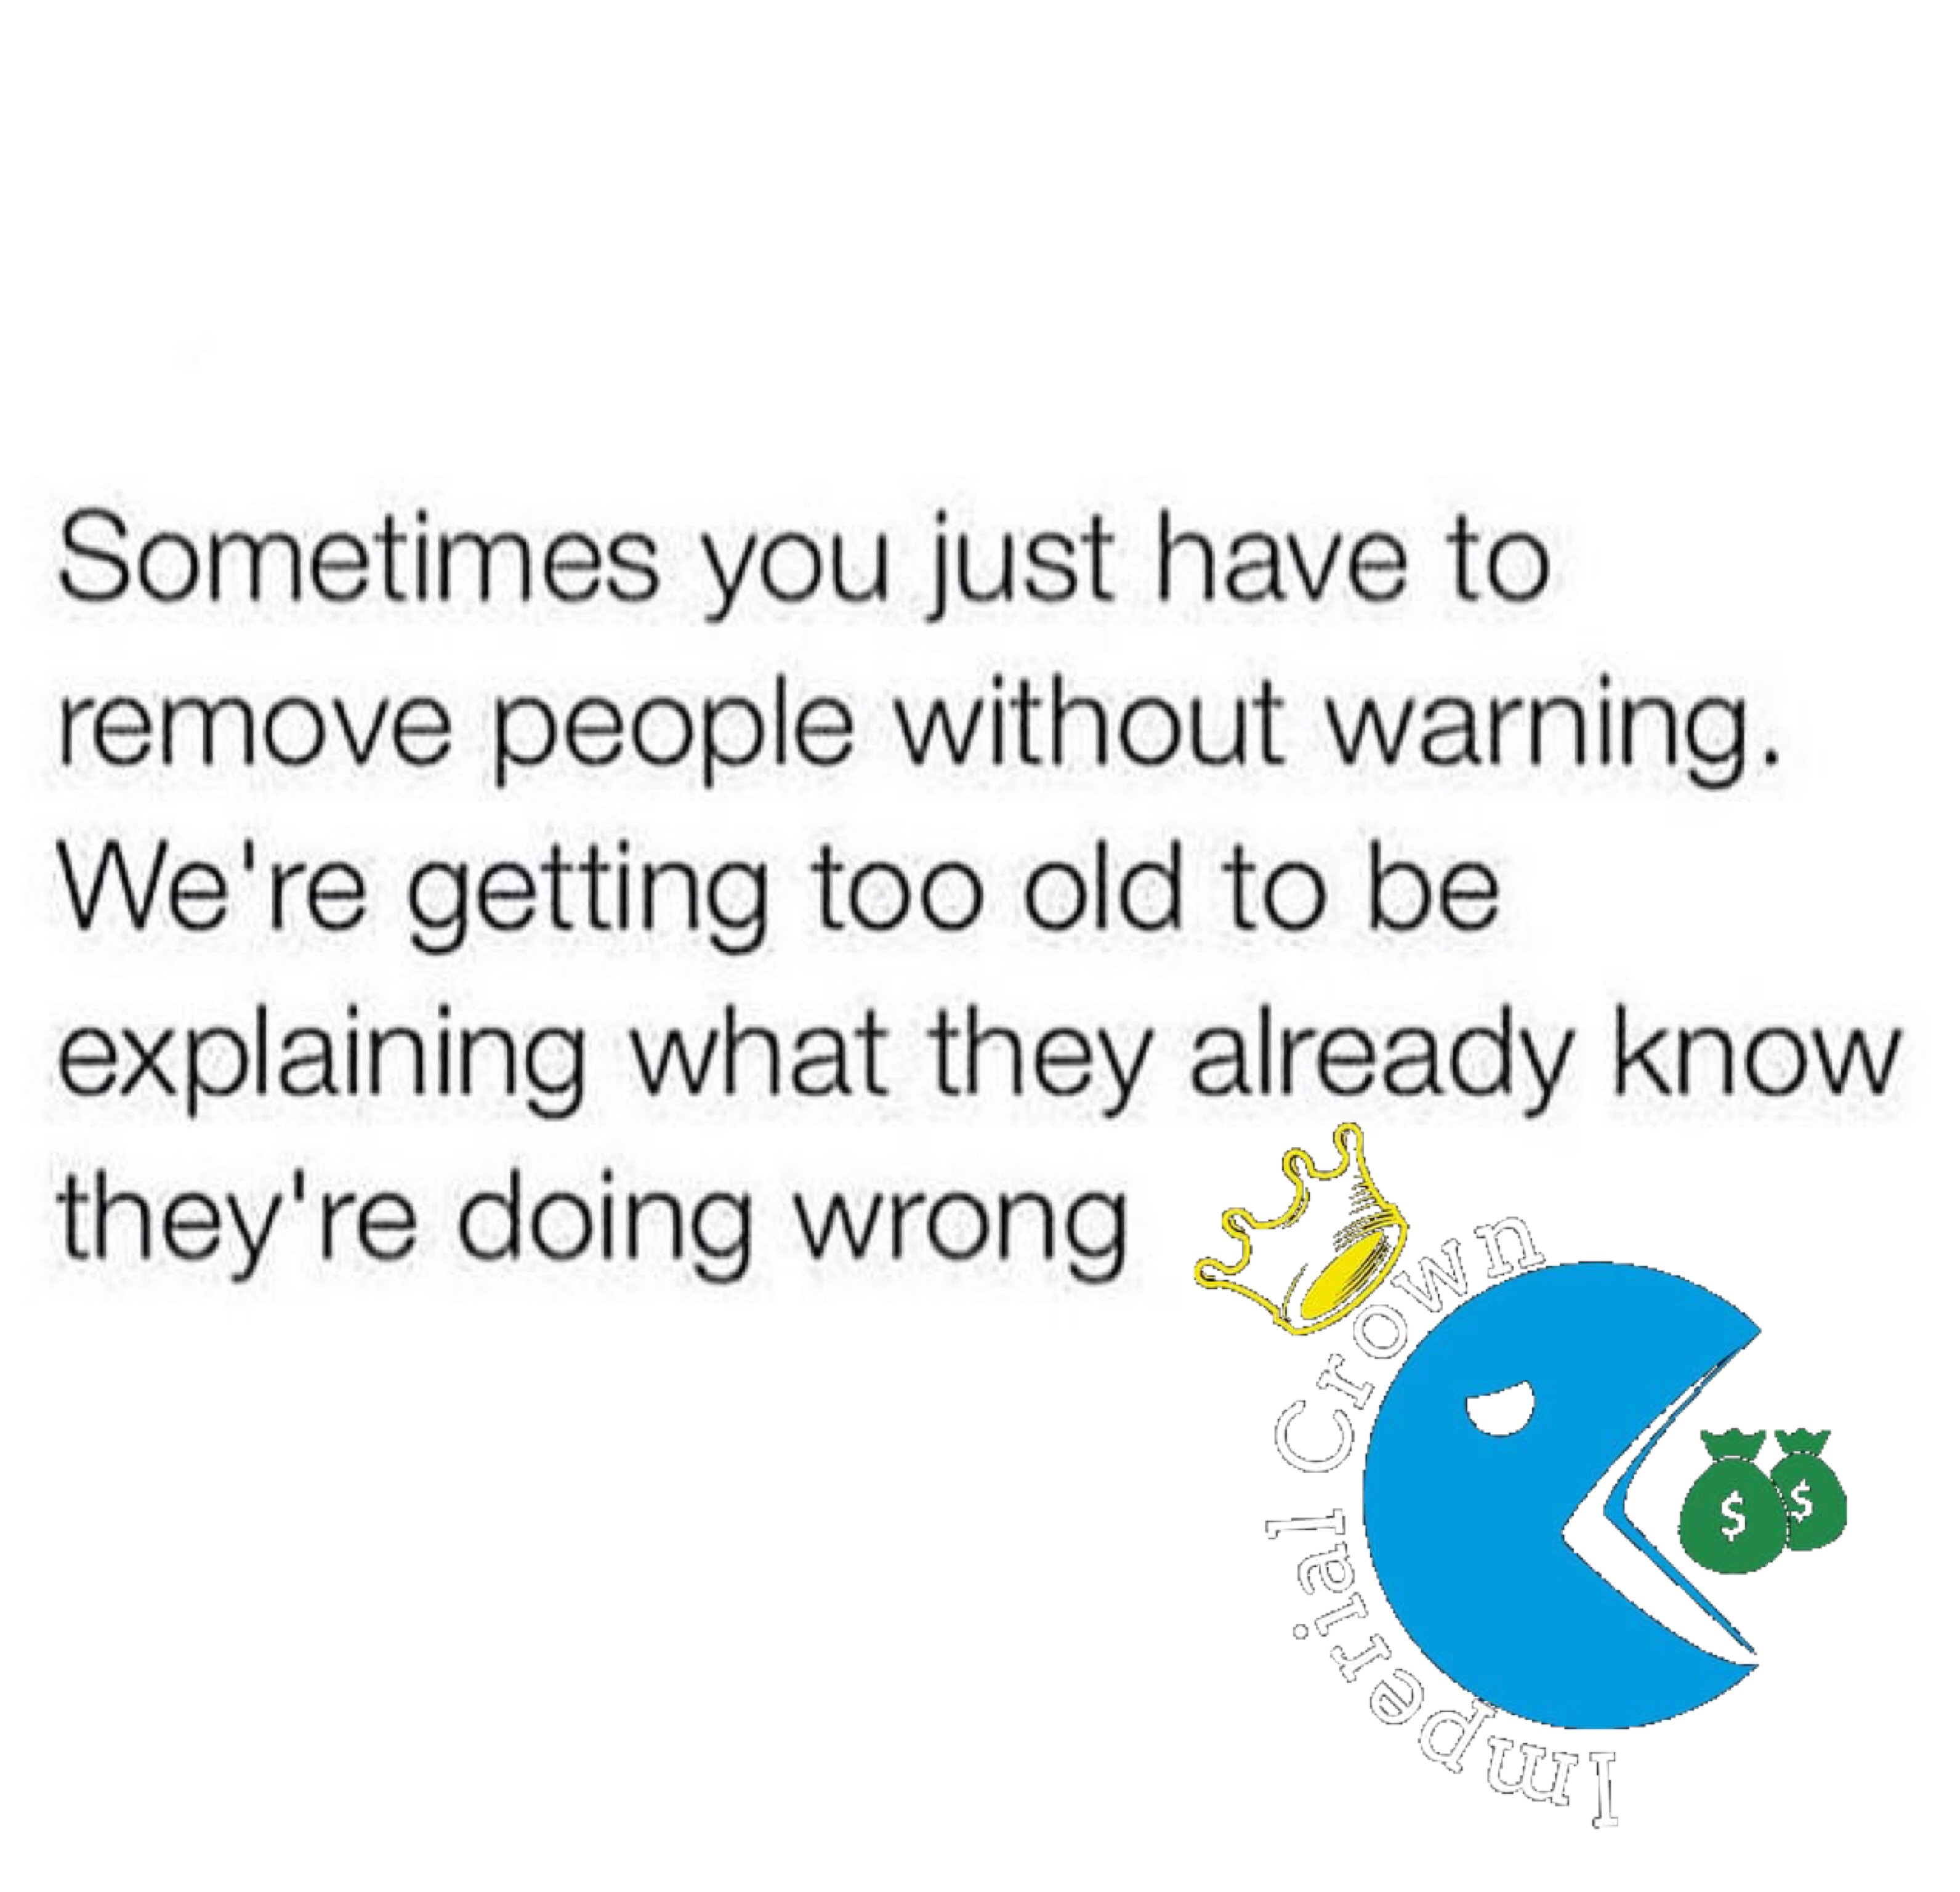 Sometimes you just have to remove people without warning we're getting too old to be explaining what they already know